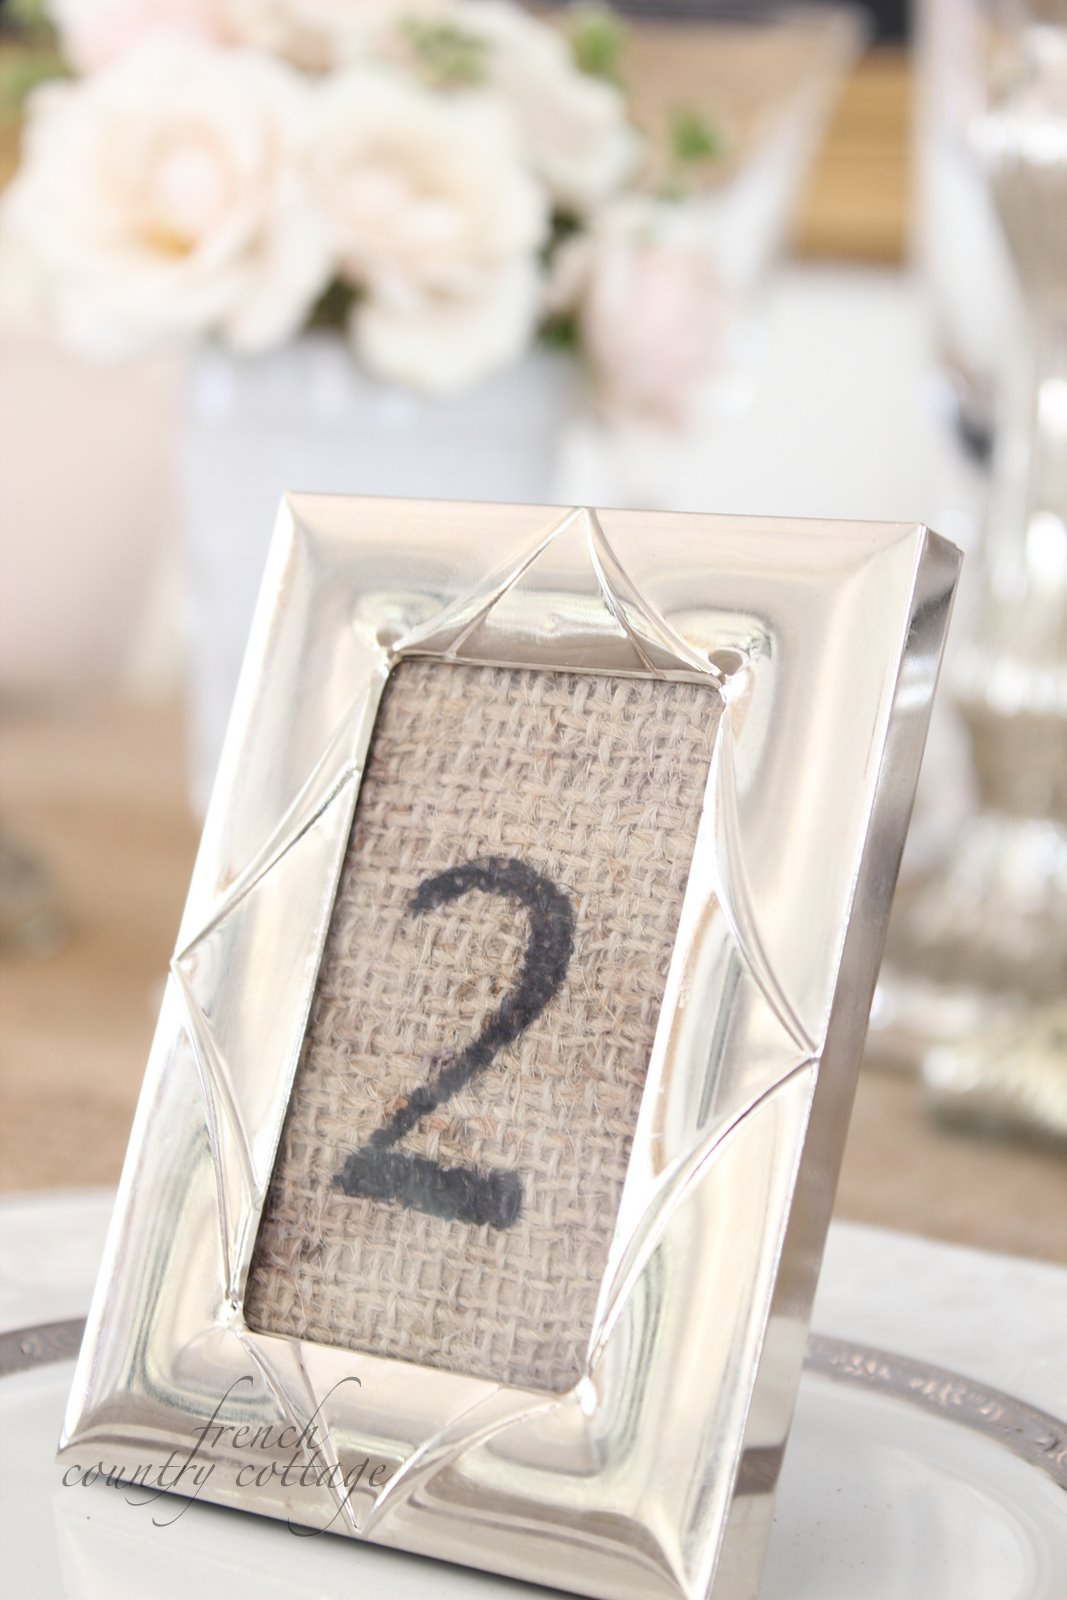 Burlap place settings - FRENCH COUNTRY COTTAGE